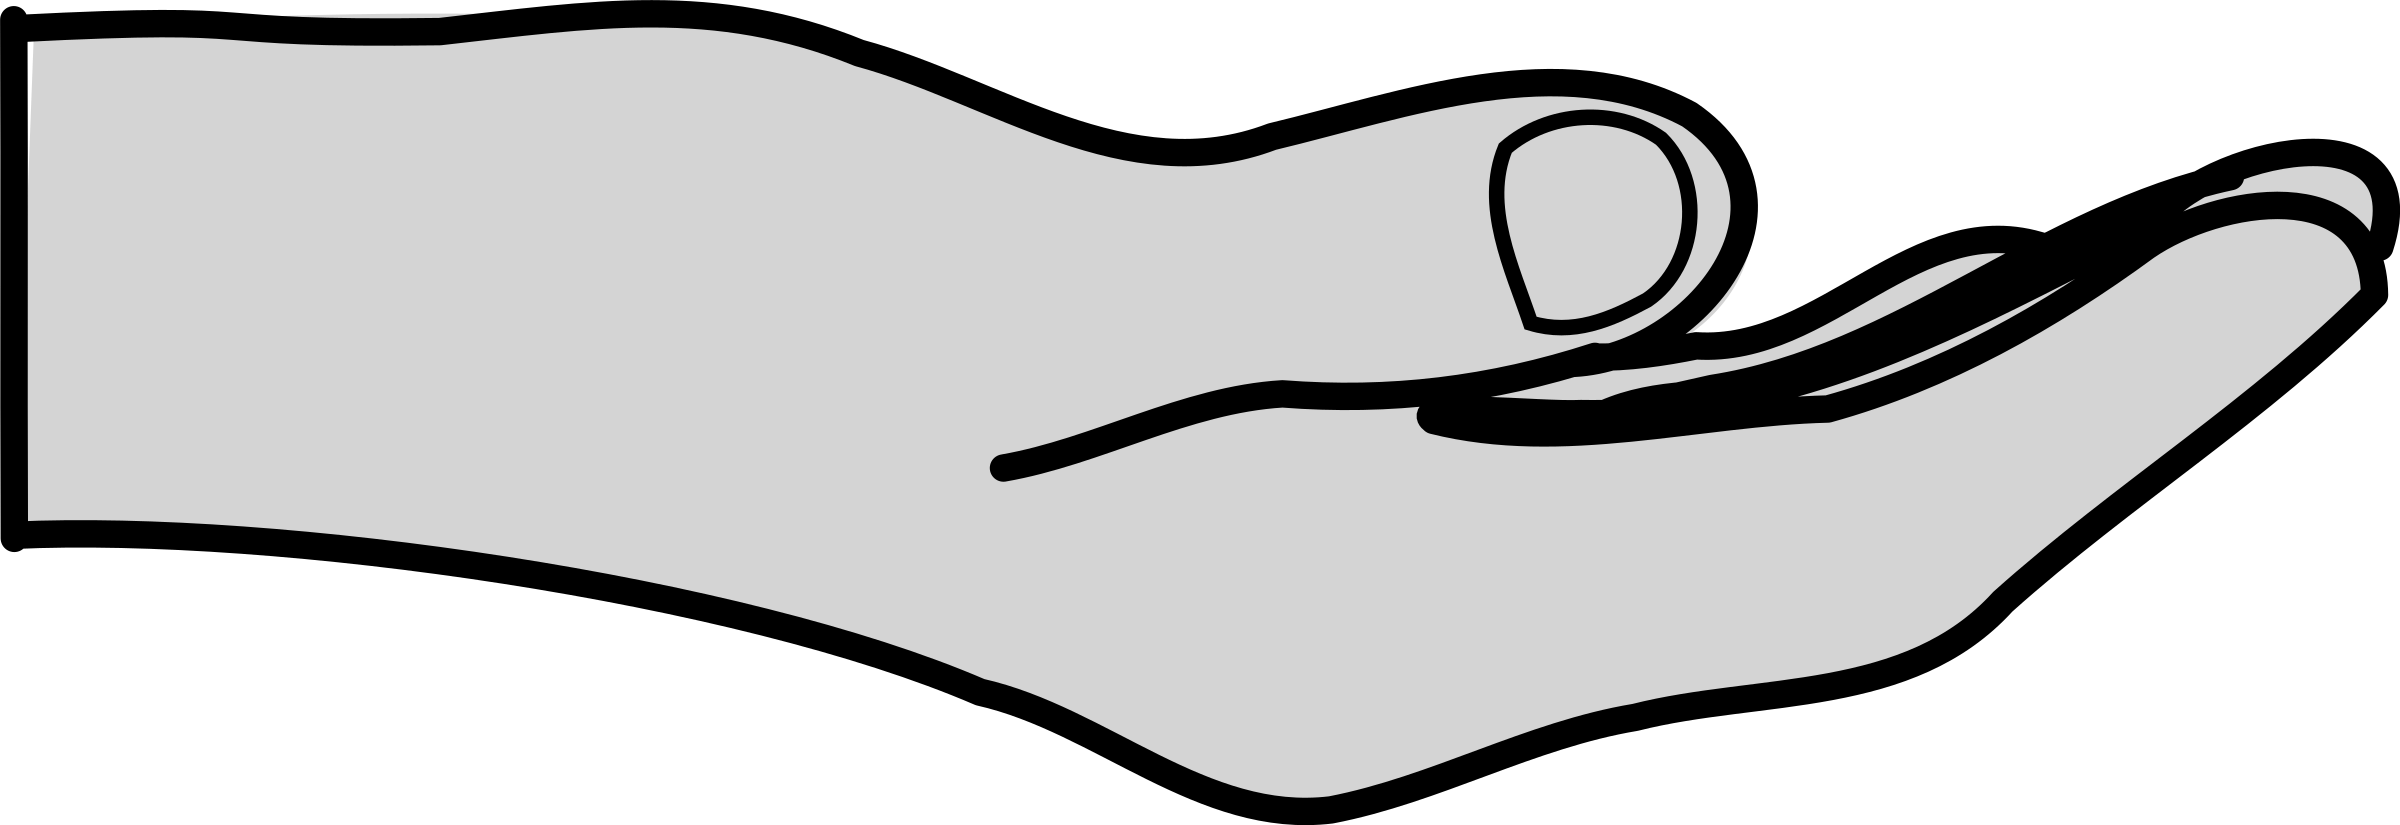 Skin clipart outstretched hand. Big image png